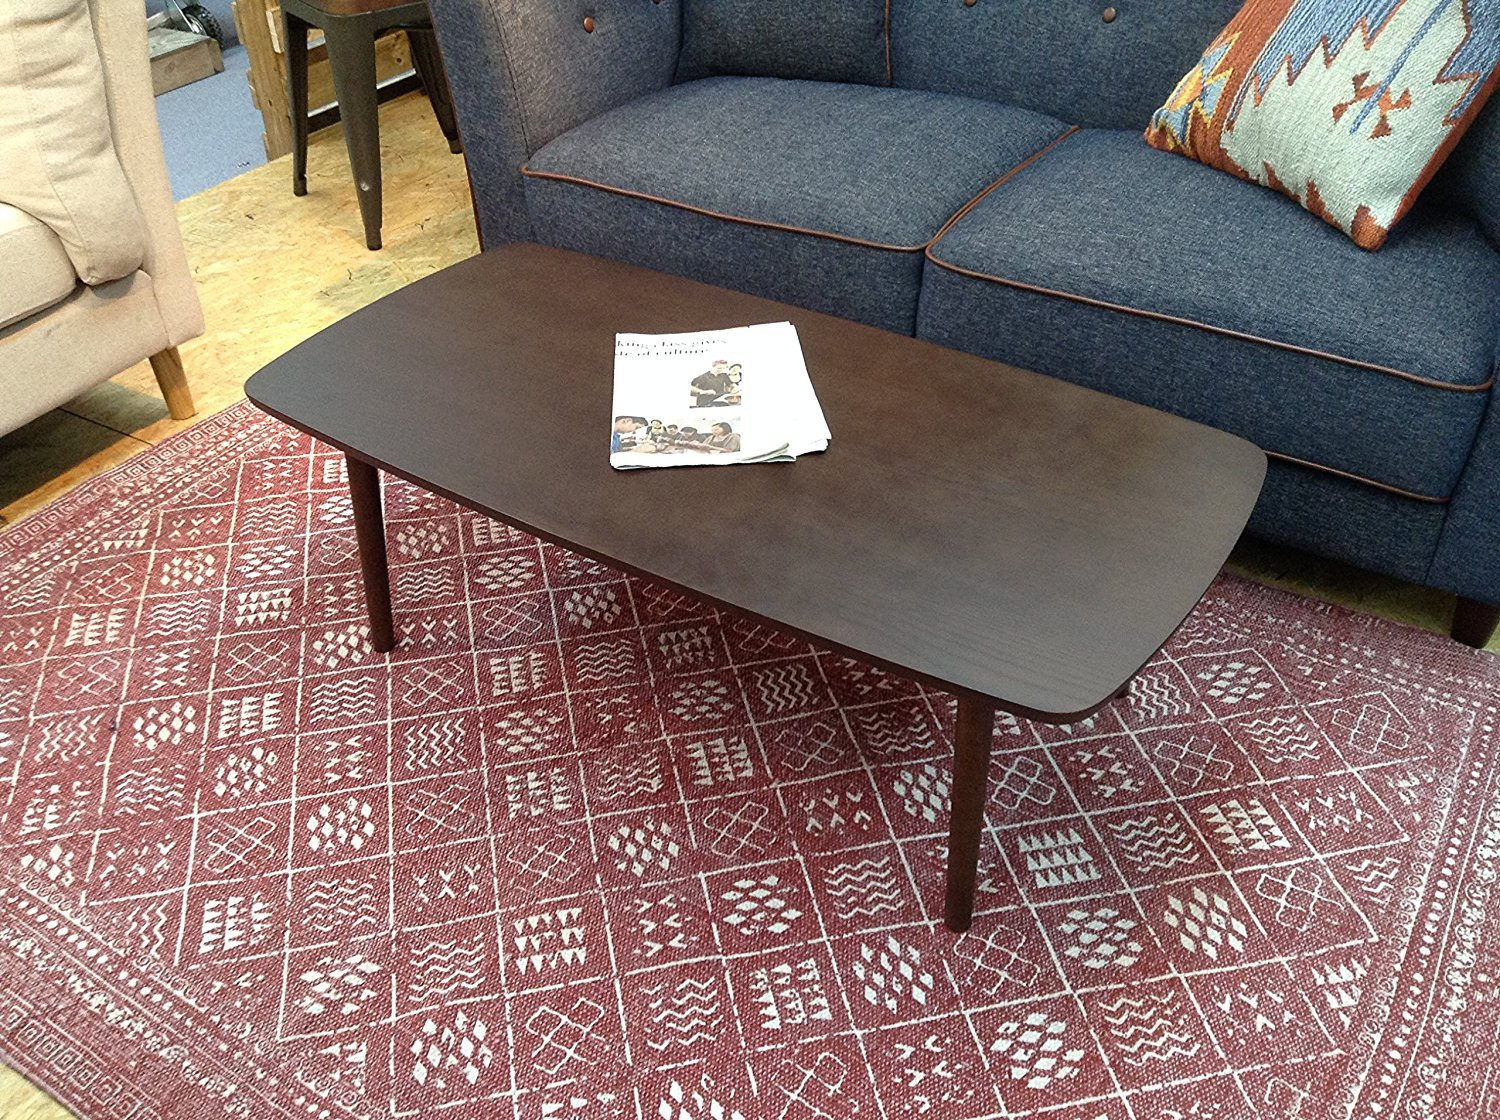 AZUMAYA Wooden Folding Legs Coffee Center Table SGS-229 Dark Brown